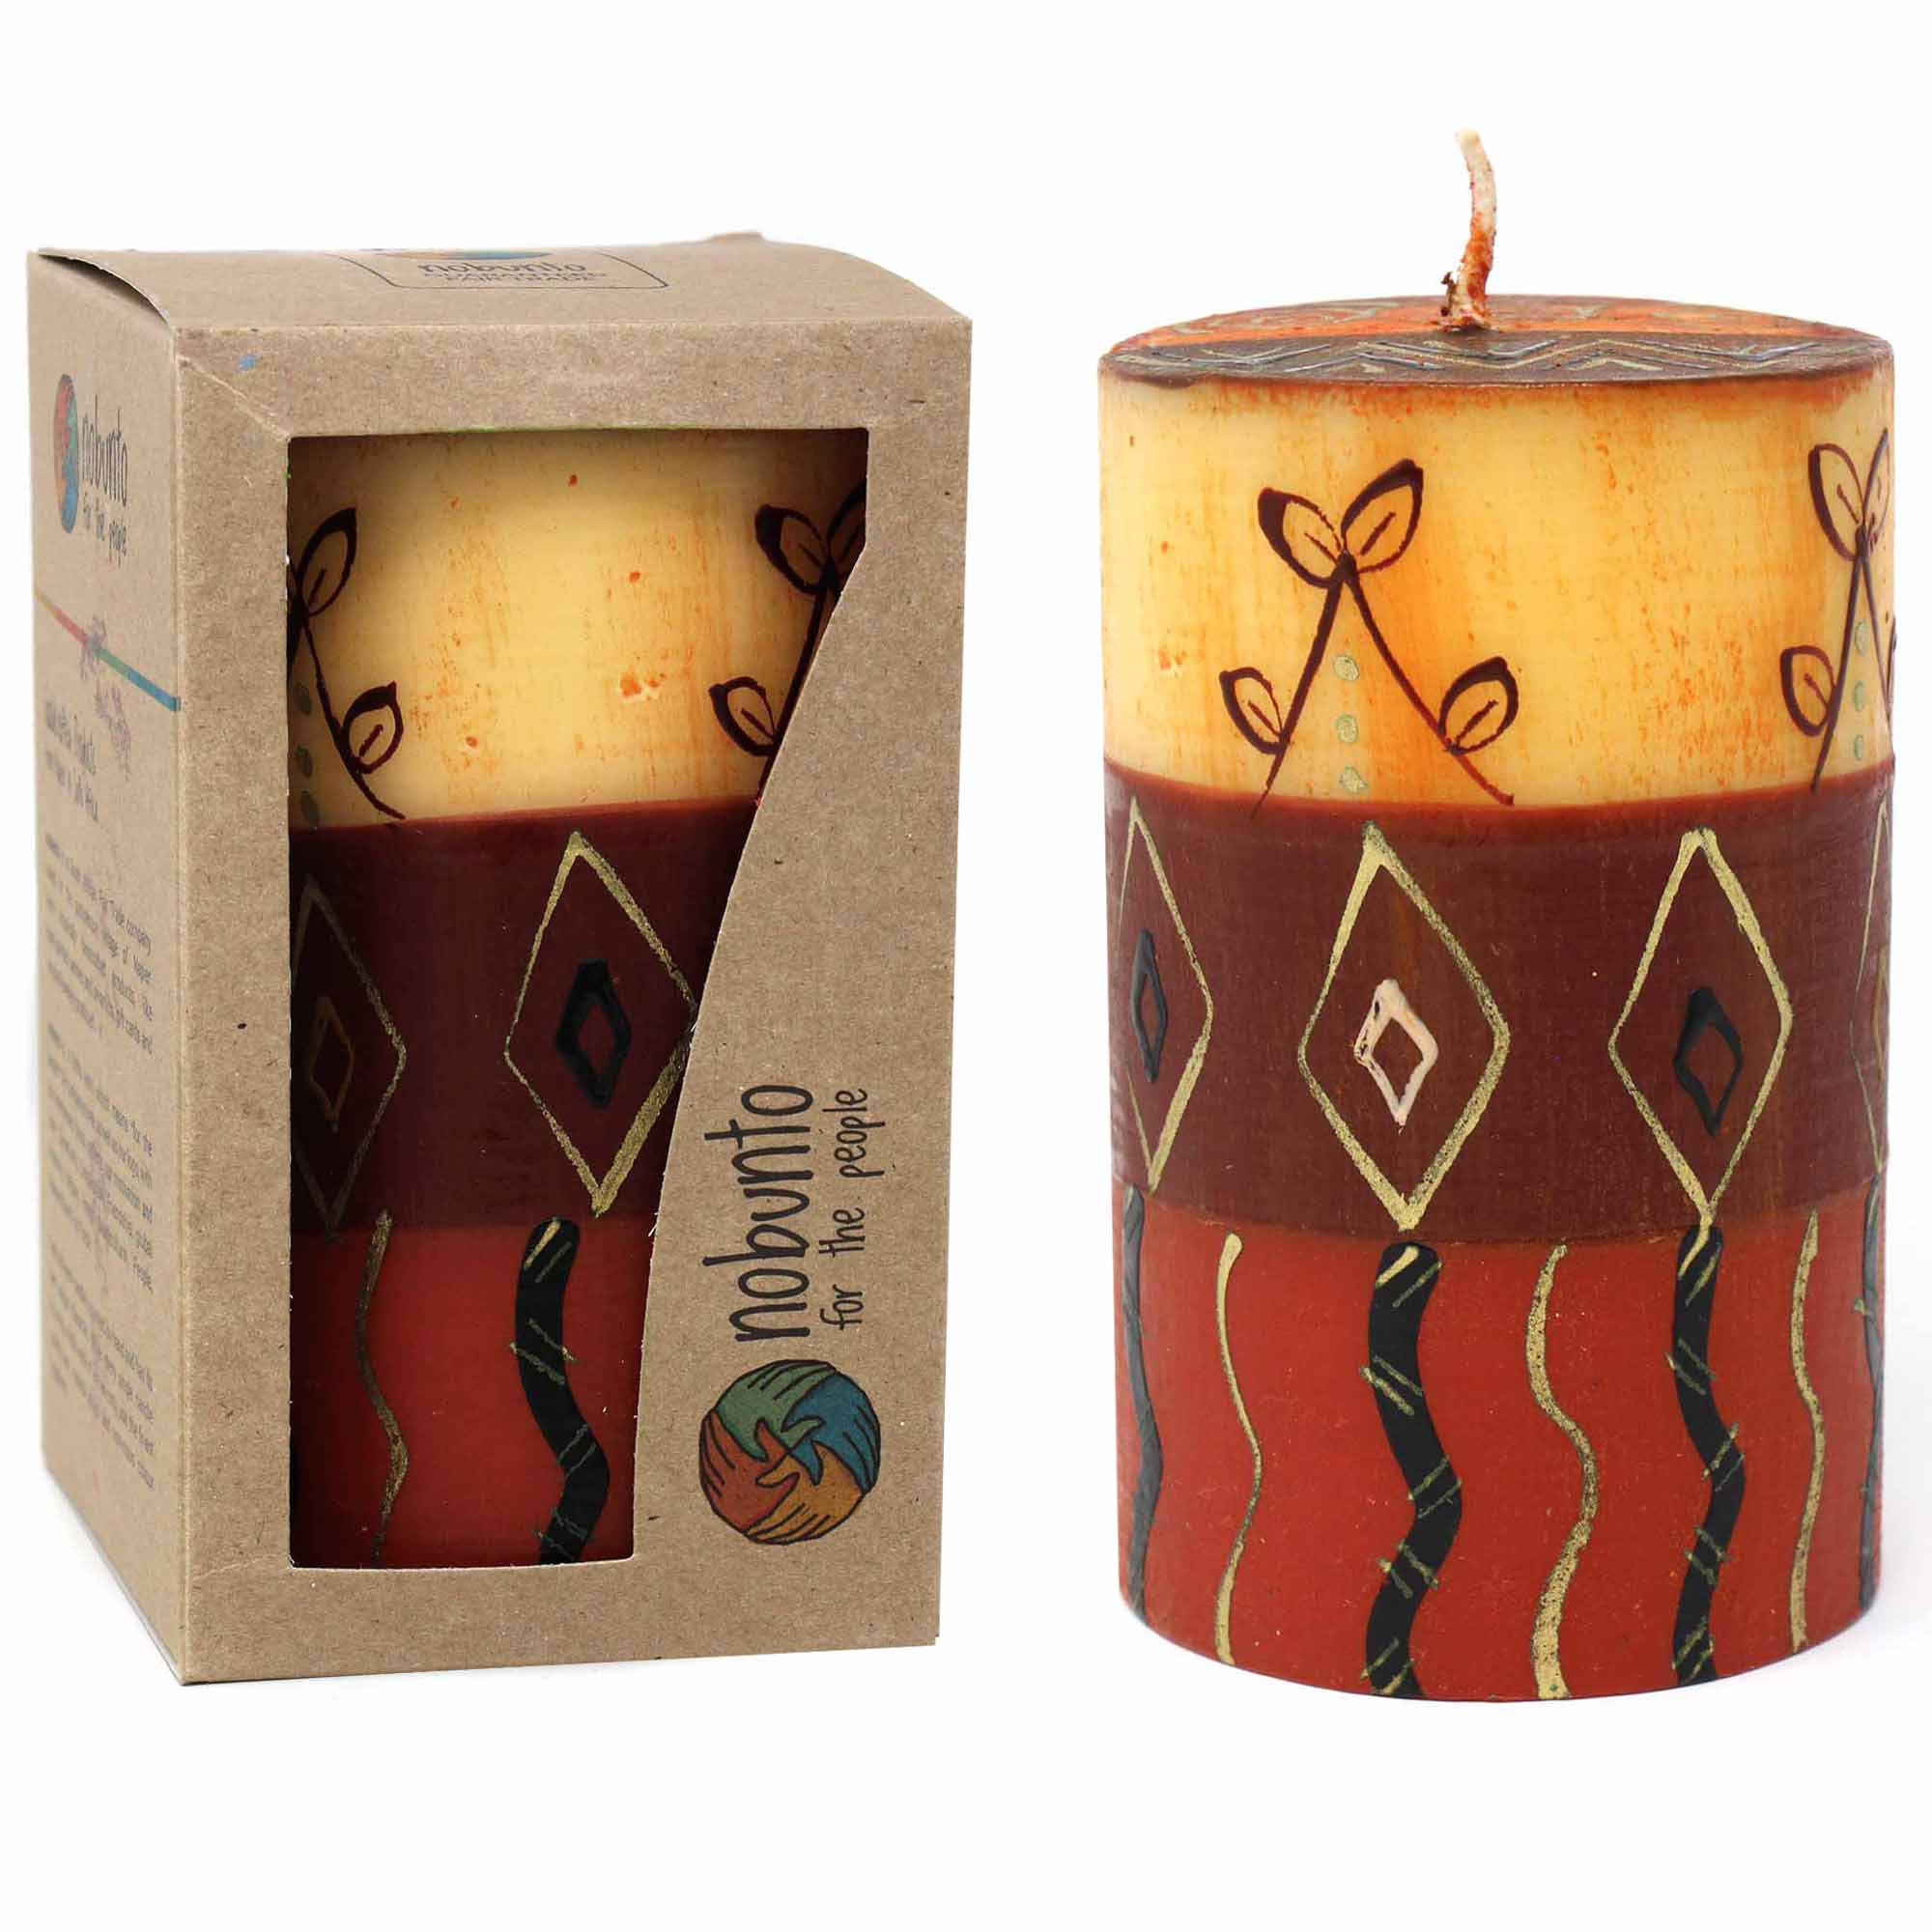 Hand-Painted Pillar Candle in Gift Box, 4-inch (Bongazi Design)